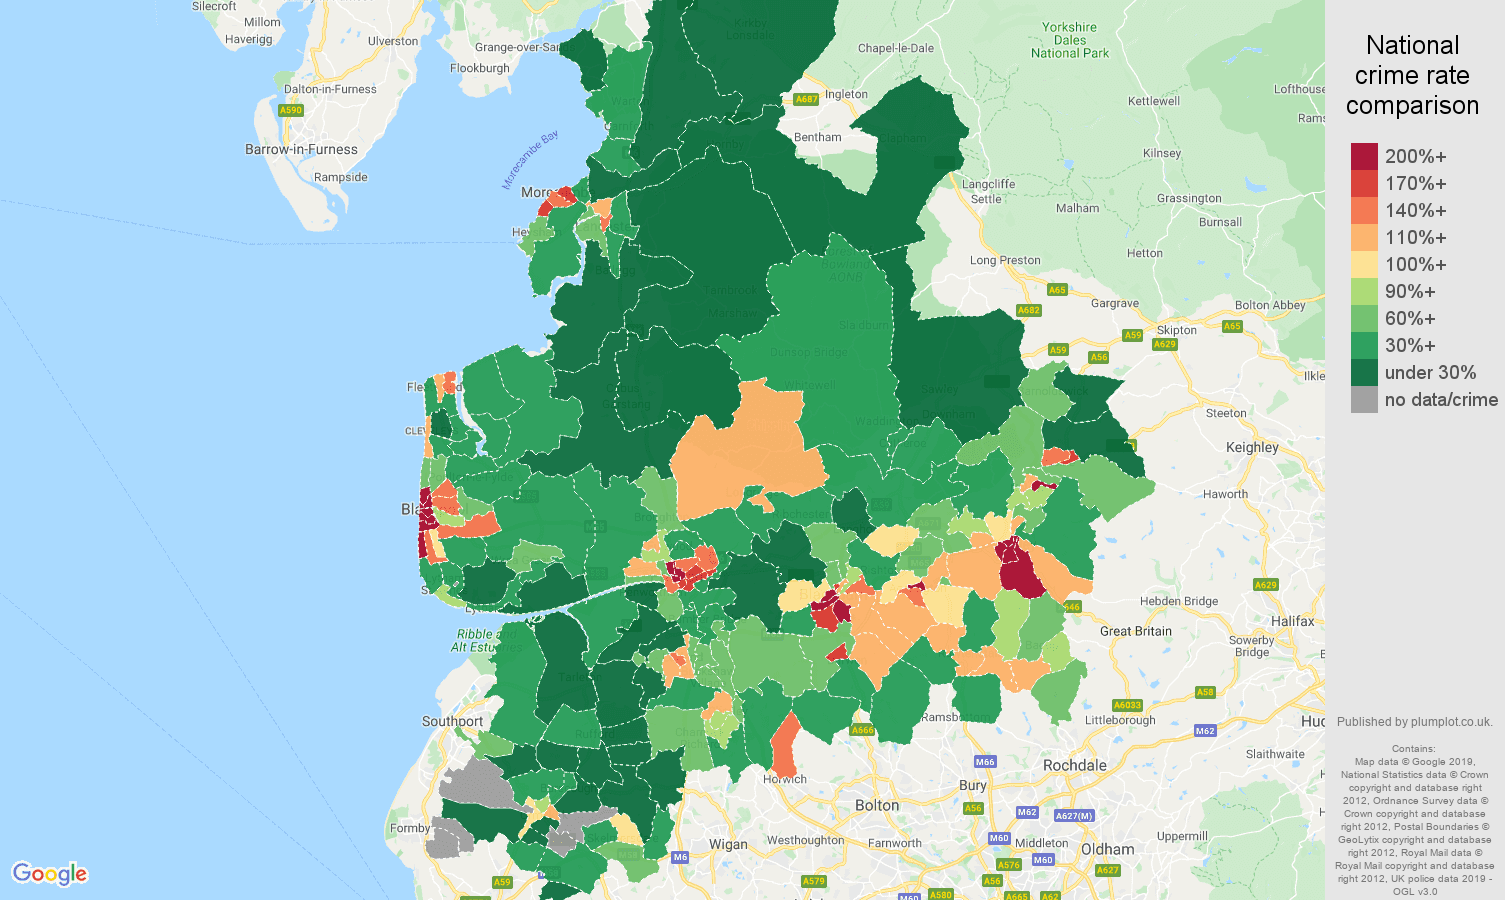 Lancashire public order crime rate comparison map